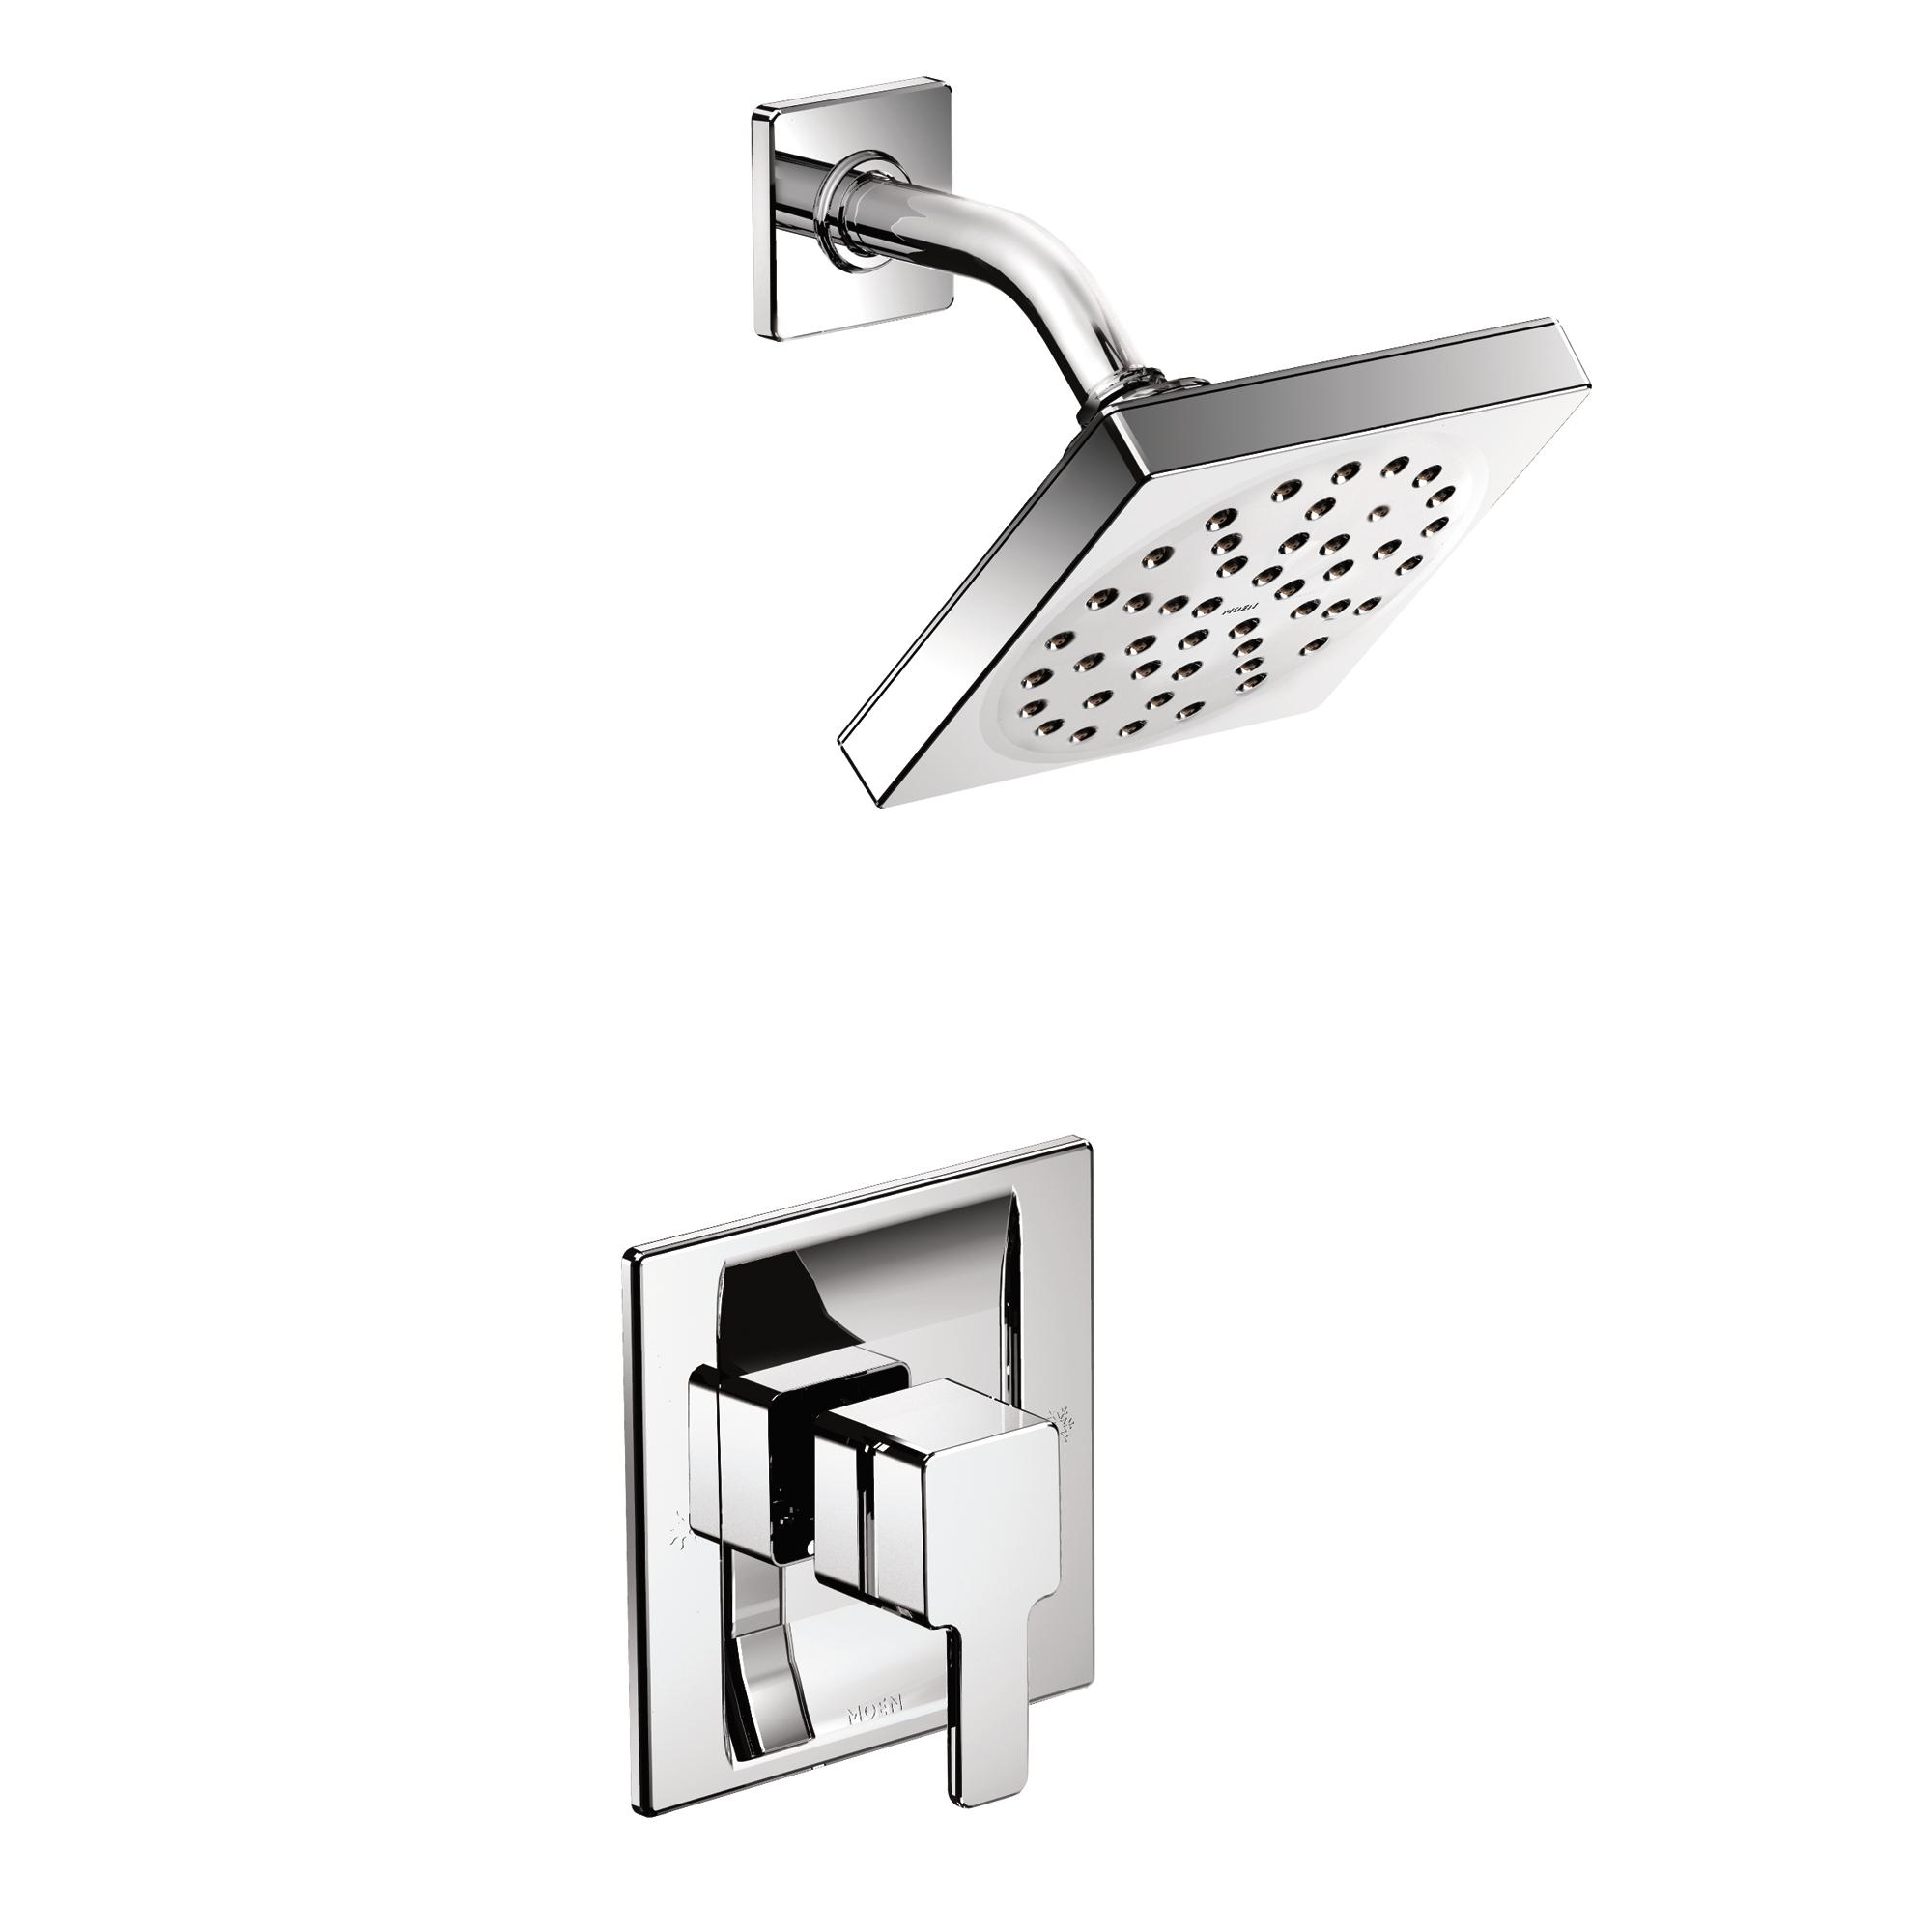 home align posi tub improvement shower lever and temp single handle pdx moen reviews with faucet wayfair